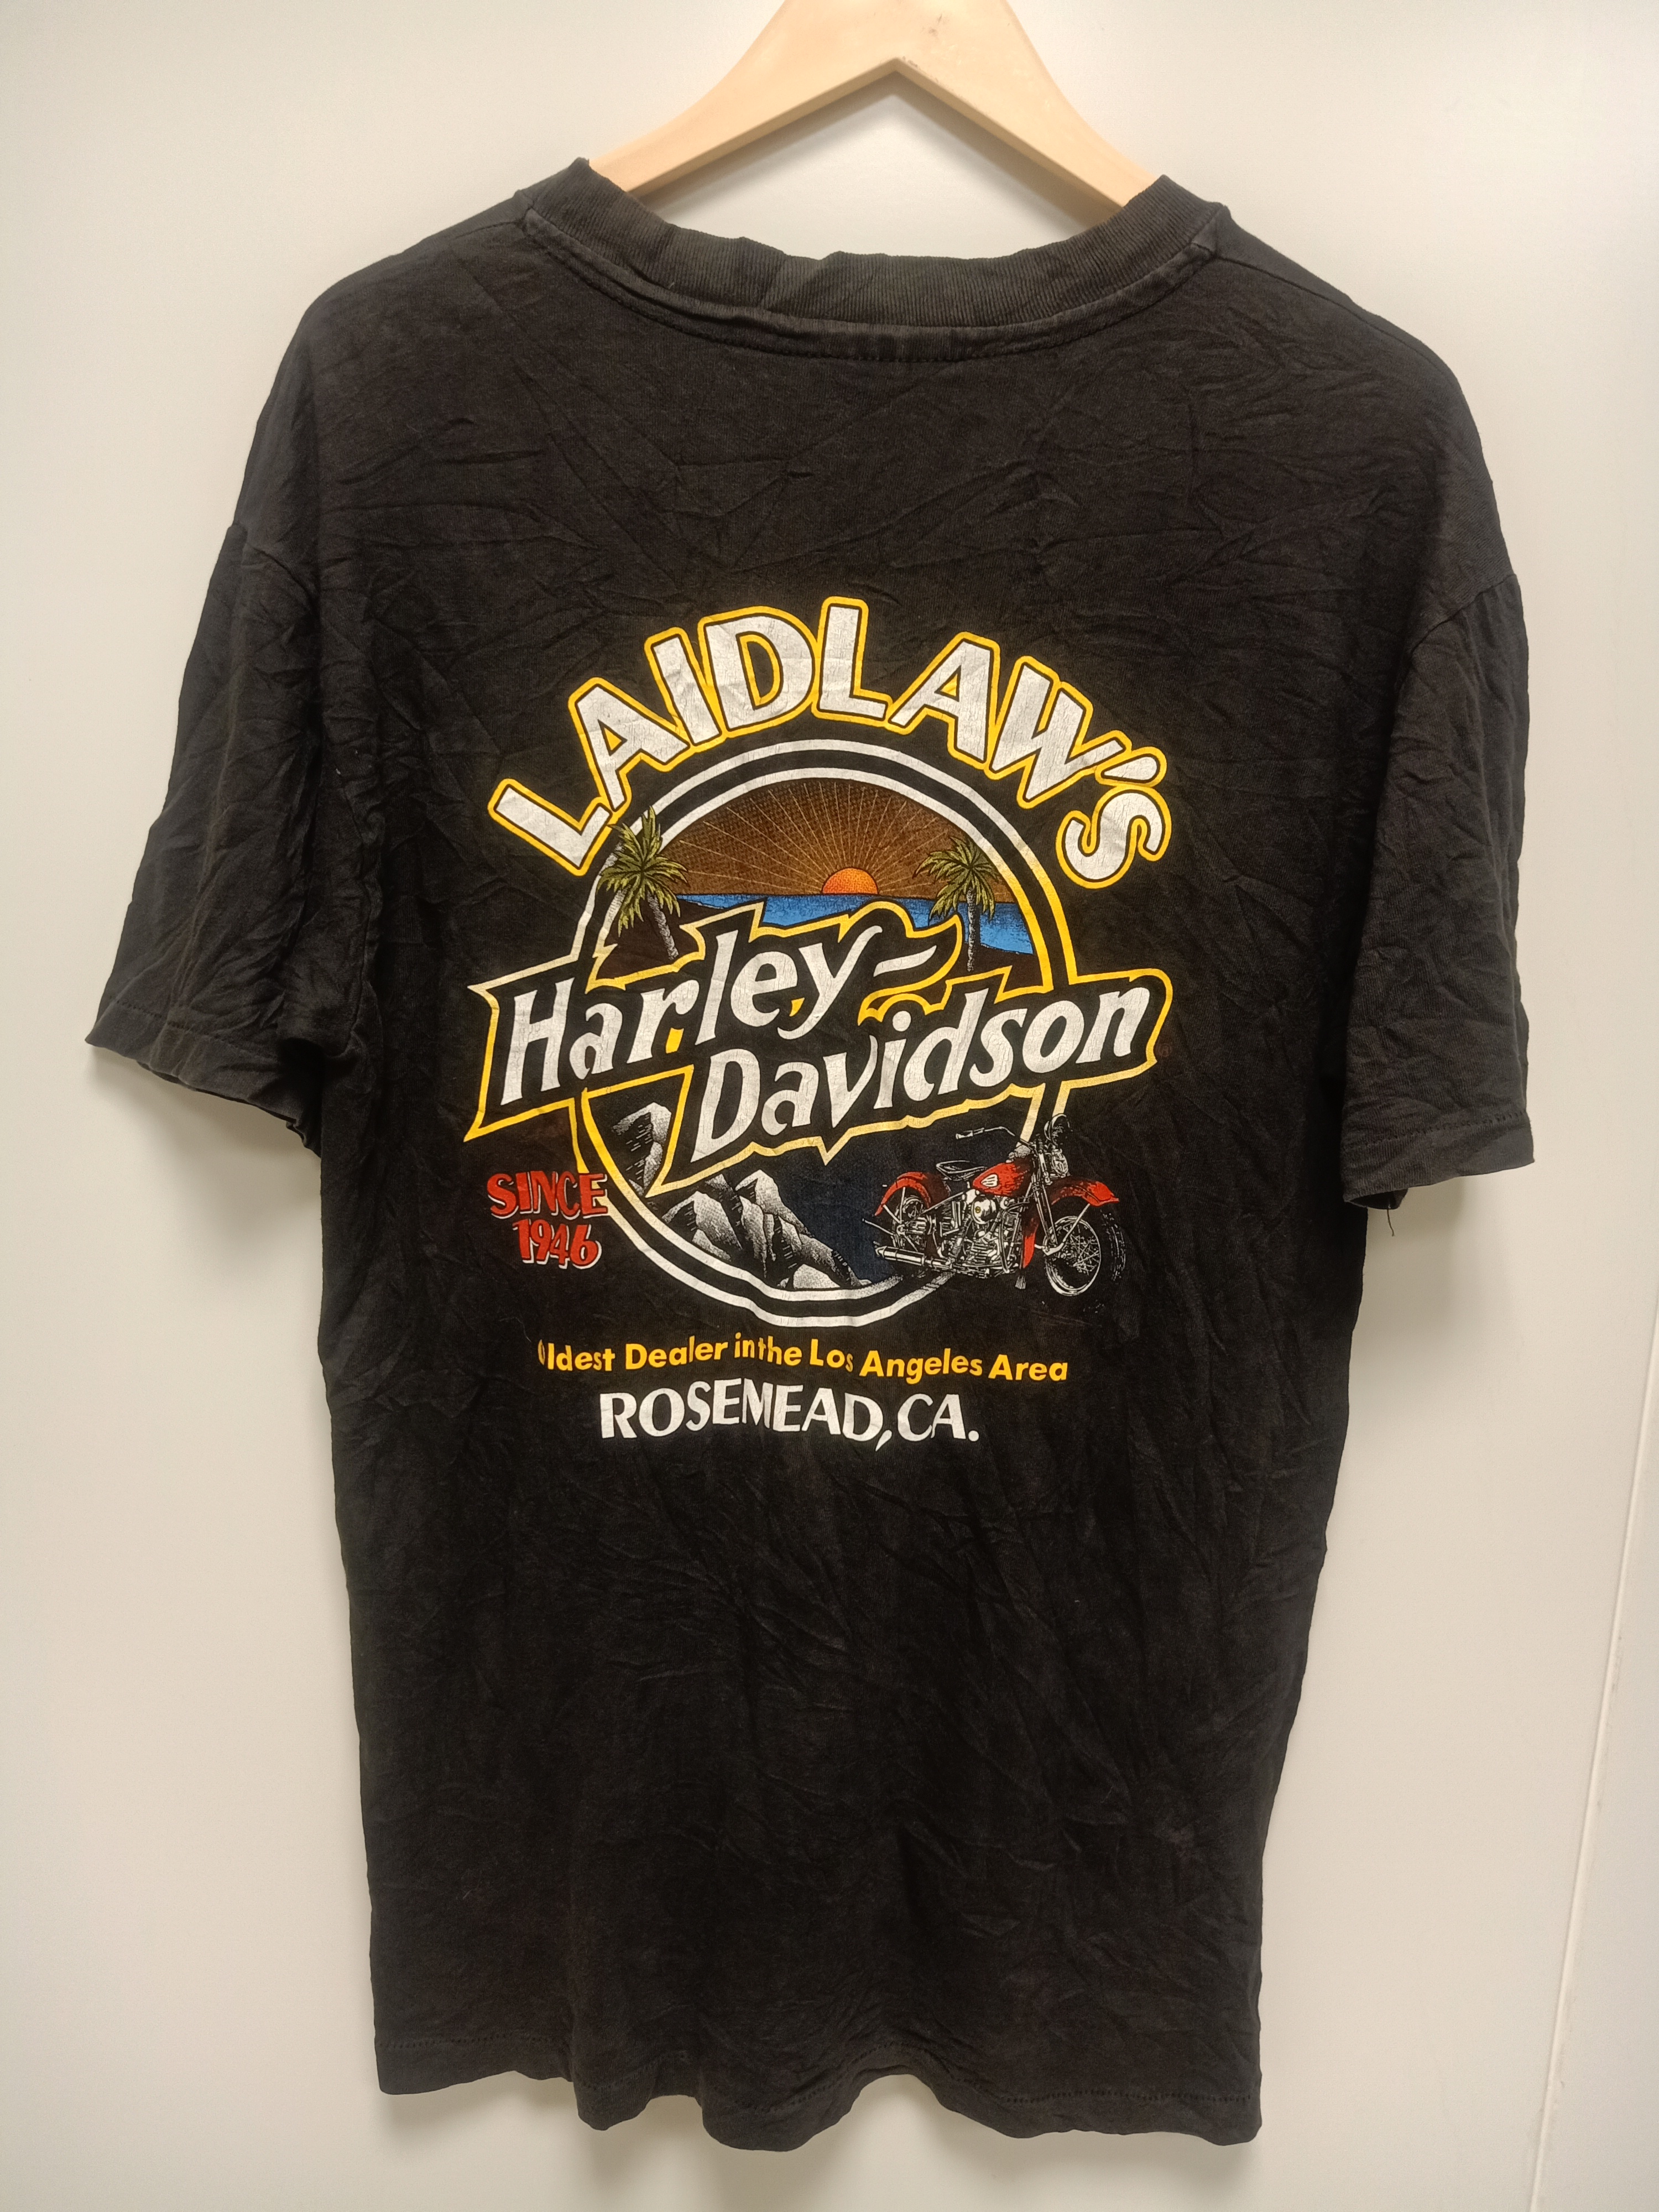 Vintage 90/'s Harley Davidson peacock feather t-shirt